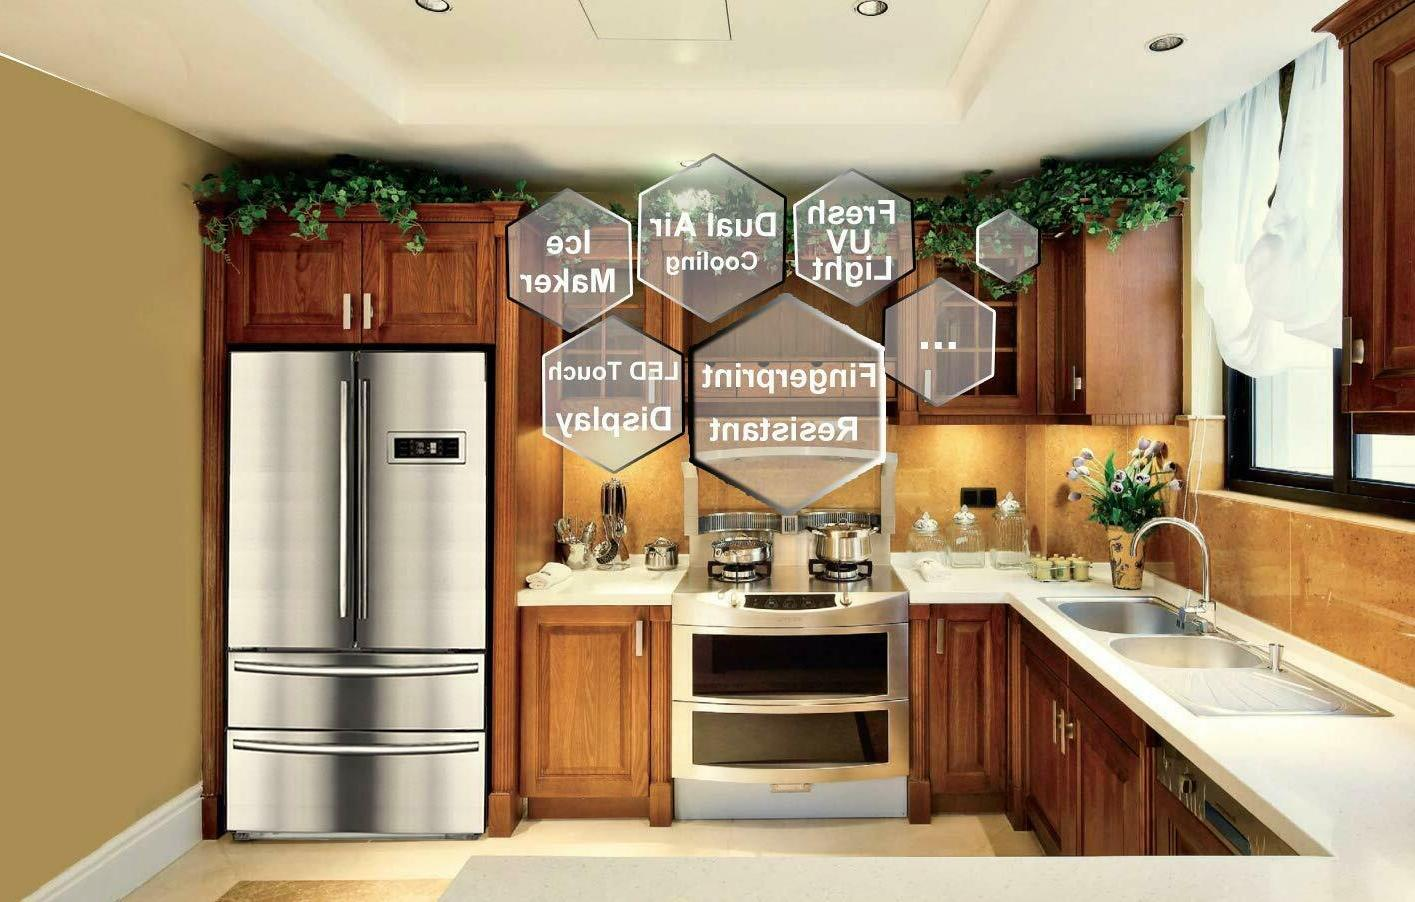 Counter Refrigerator Side-by-Side 20.7 cu ft